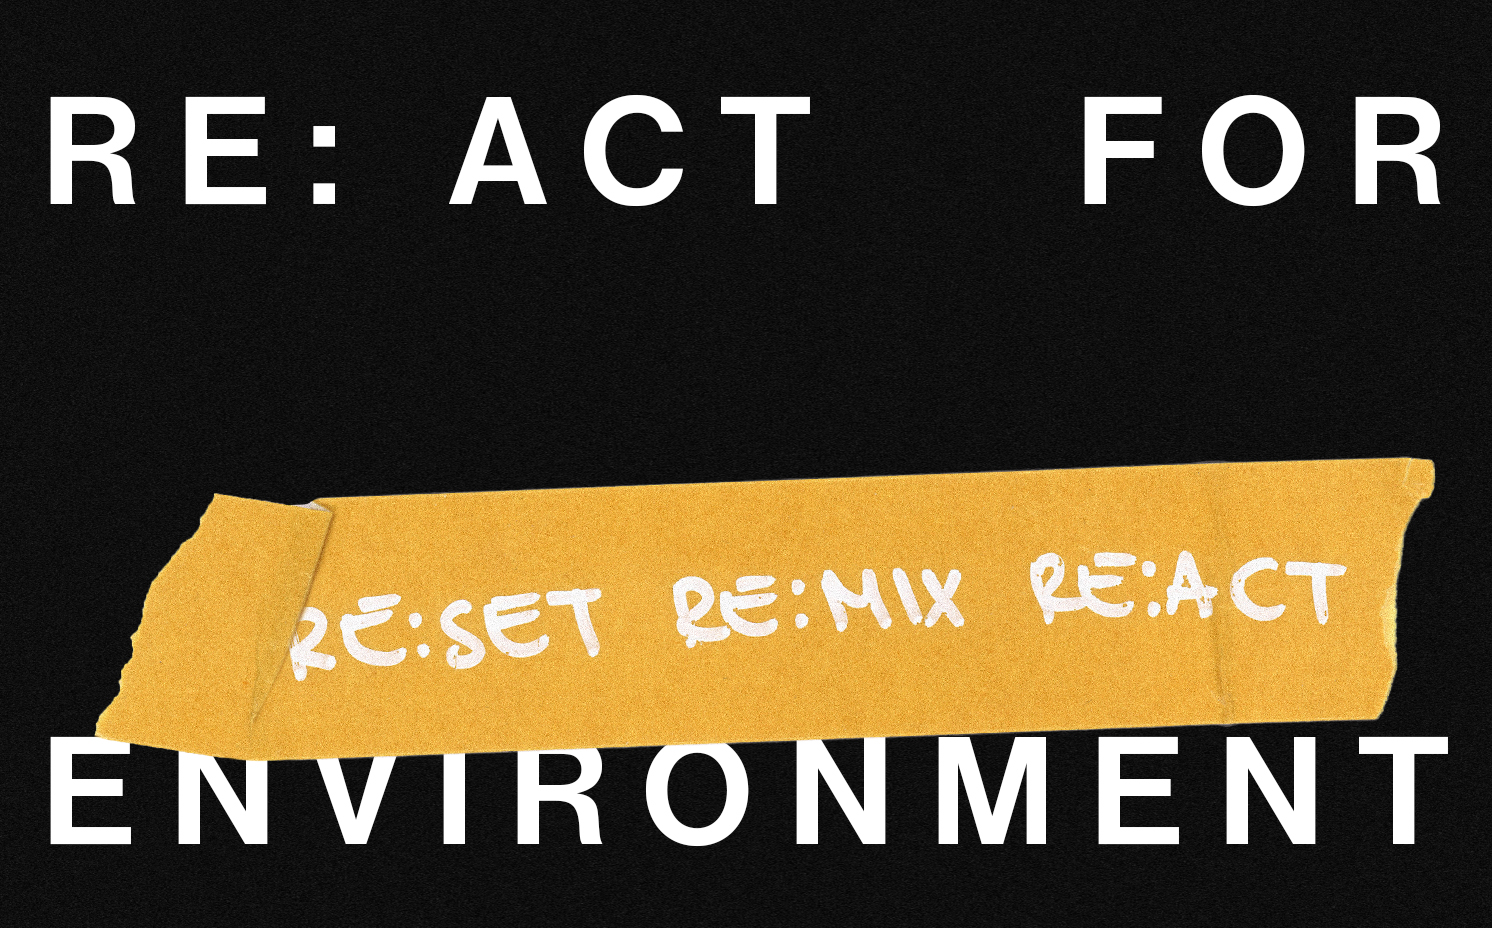 RE: ACT FOR ENVIRONMENT